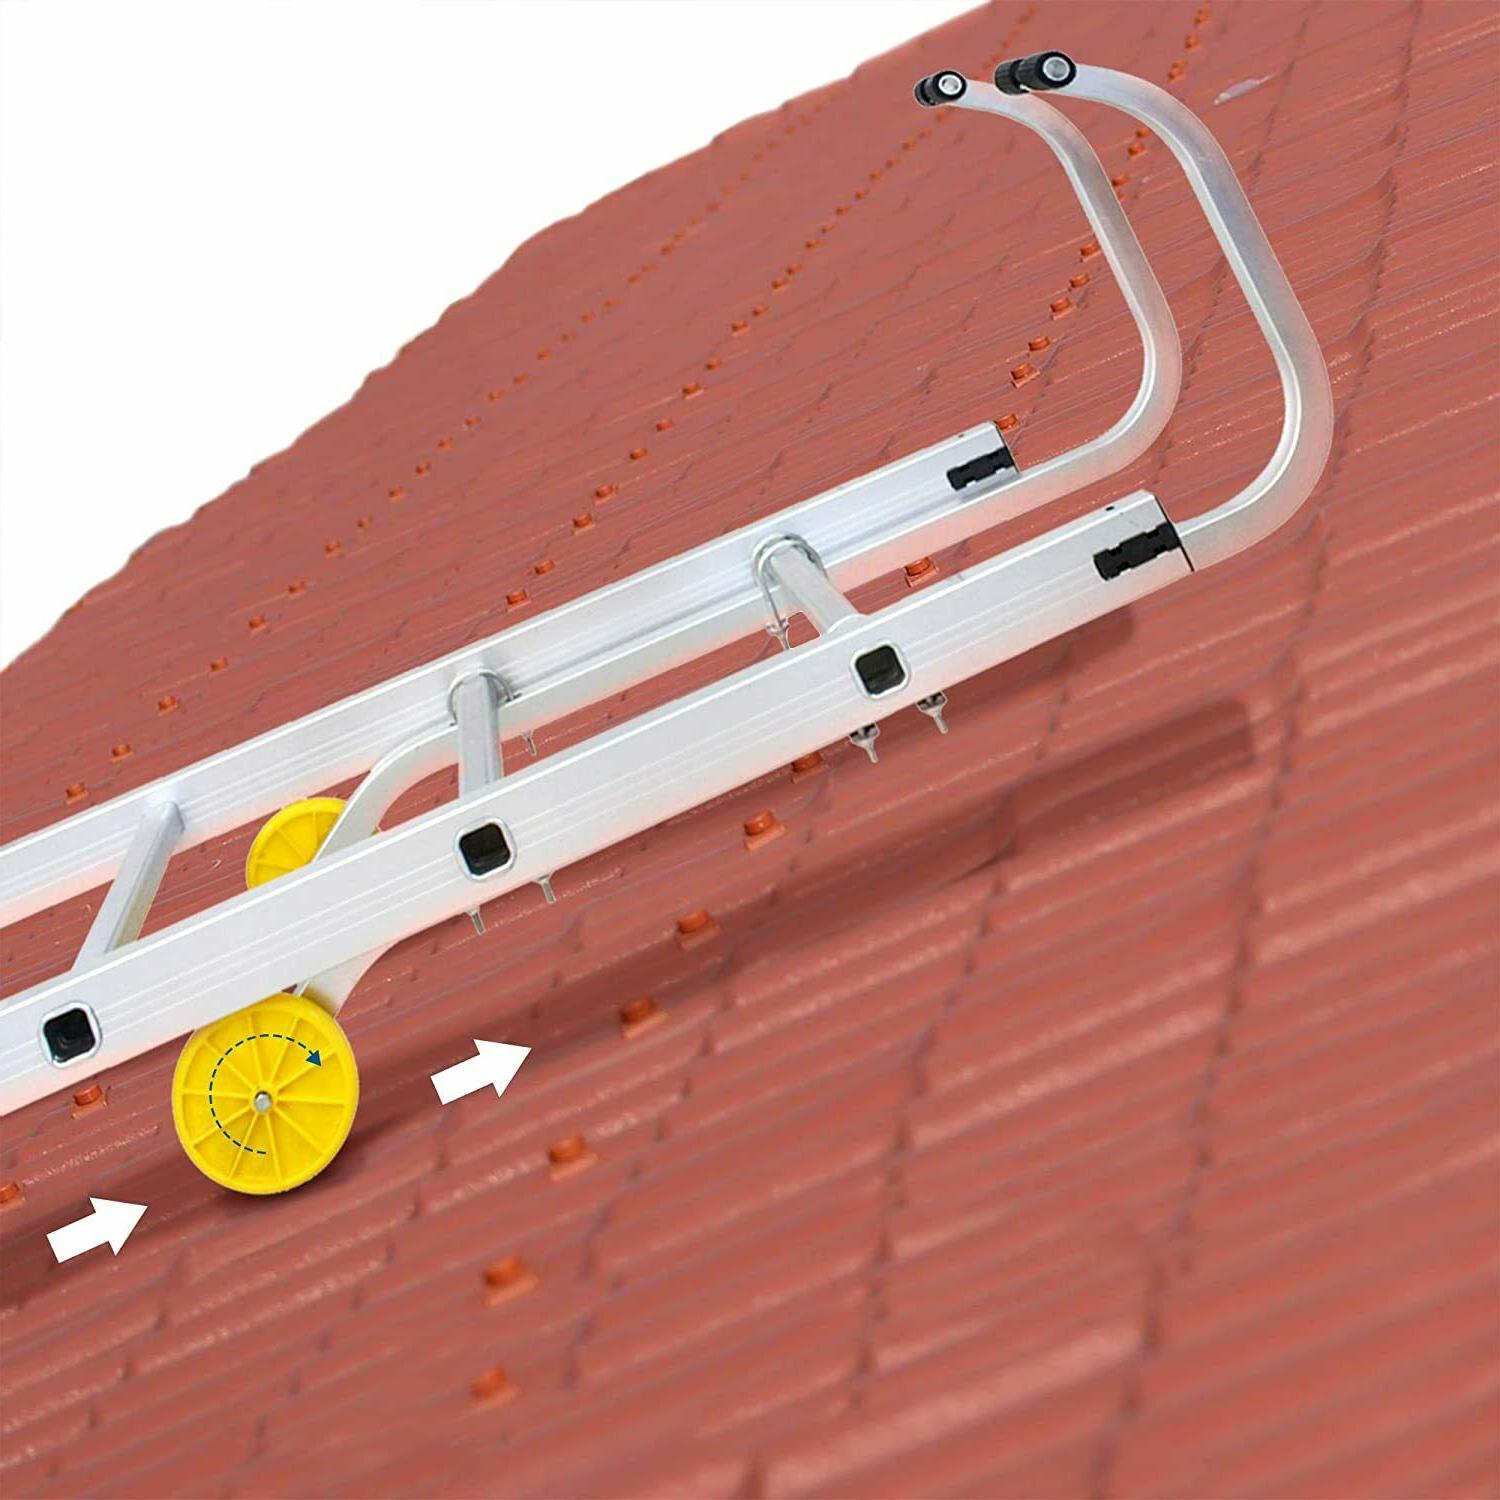 Sotech Hook with Wheels, Universal Ladder Kit